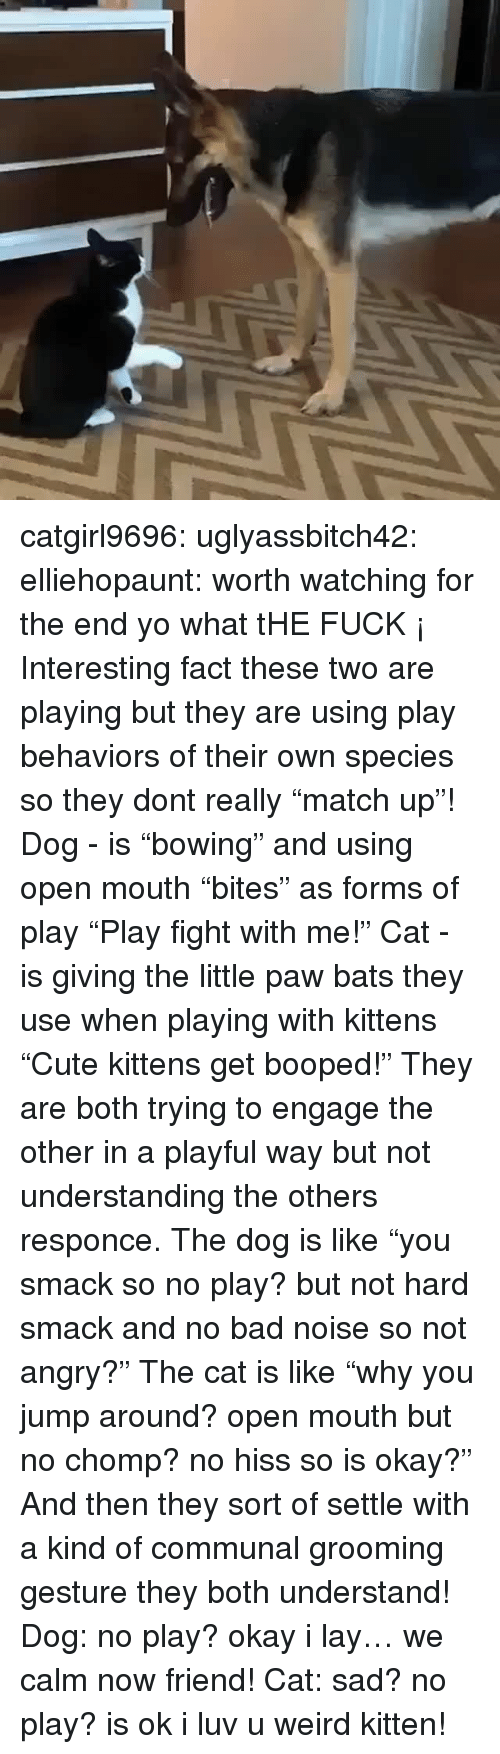 """chomp: catgirl9696: uglyassbitch42:  elliehopaunt: worth watching for the end  yo what tHE FUCK ¡   Interesting fact these two are playing but they are using play behaviors of their own species so they dont really """"match up""""! Dog - is """"bowing"""" and using open mouth """"bites"""" as forms of play  """"Play fight with me!"""" Cat - is giving the little paw bats they use when playing with kittens """"Cute kittens get booped!"""" They are both trying to engage the other in a playful way but not understanding the others responce. The dog is like """"you smack so no play? but not hard smack and no bad noise so not angry?"""" The cat is like """"why you jump around? open mouth but no chomp? no hiss so is okay?"""" And then they sort of settle with a kind of communal grooming gesture they both understand! Dog: no play? okay i lay… we calm now friend! Cat: sad? no play? is ok i luv u weird kitten!"""